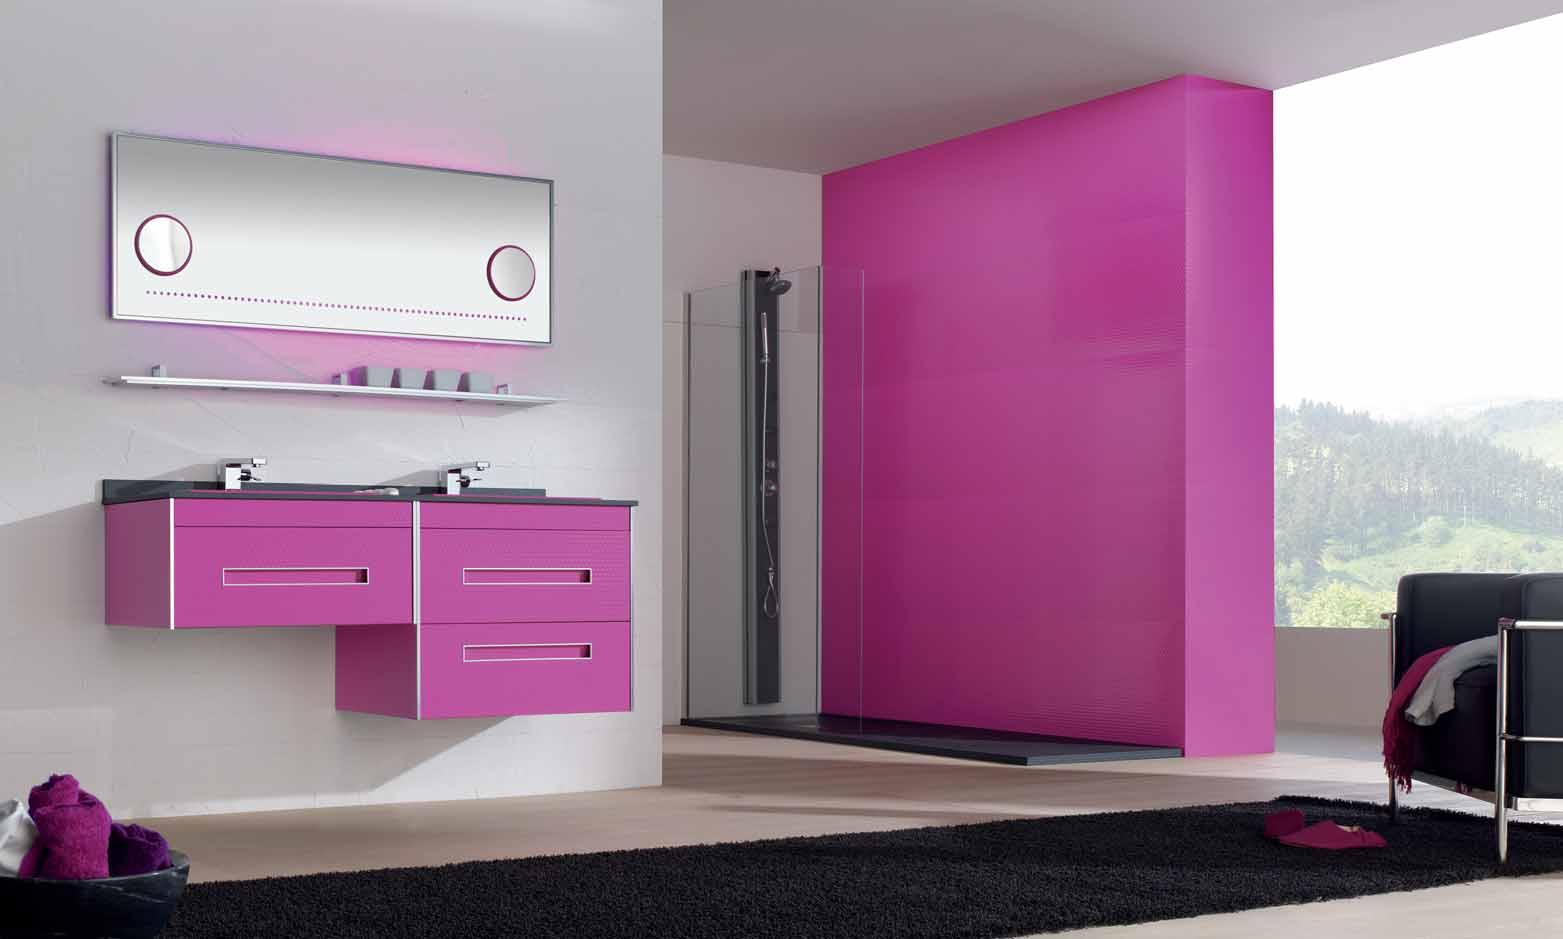 life love subway pink of along green reasons ideas as arresting retro deluxe also with to marble candles tiles large s blush bathroom wells size at walls picturesque tile